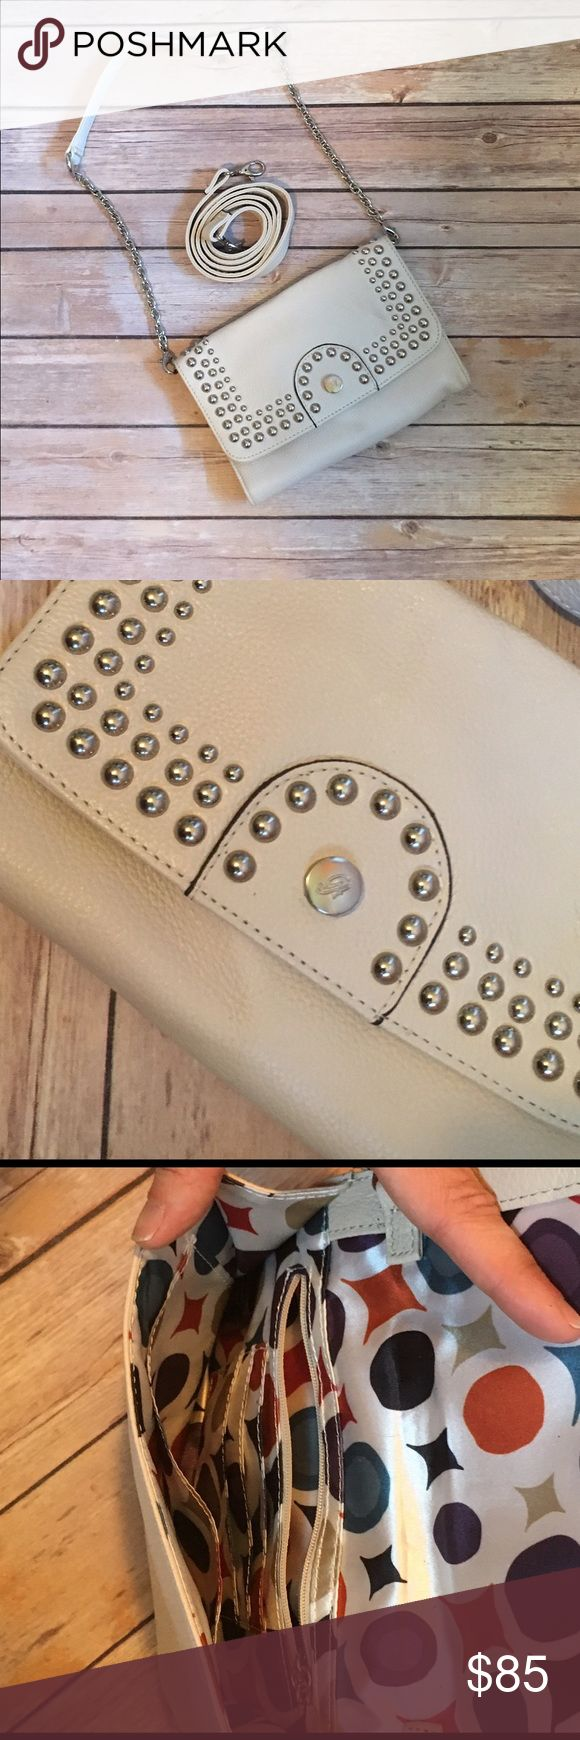 💕Grace Adele LEATHER Paige Clutch Genuine leather clutch. Used once or twice. EUC. Comes with two changeable straps. Can be used solo or with straps. Grace Adele Bags Clutches & Wristlets